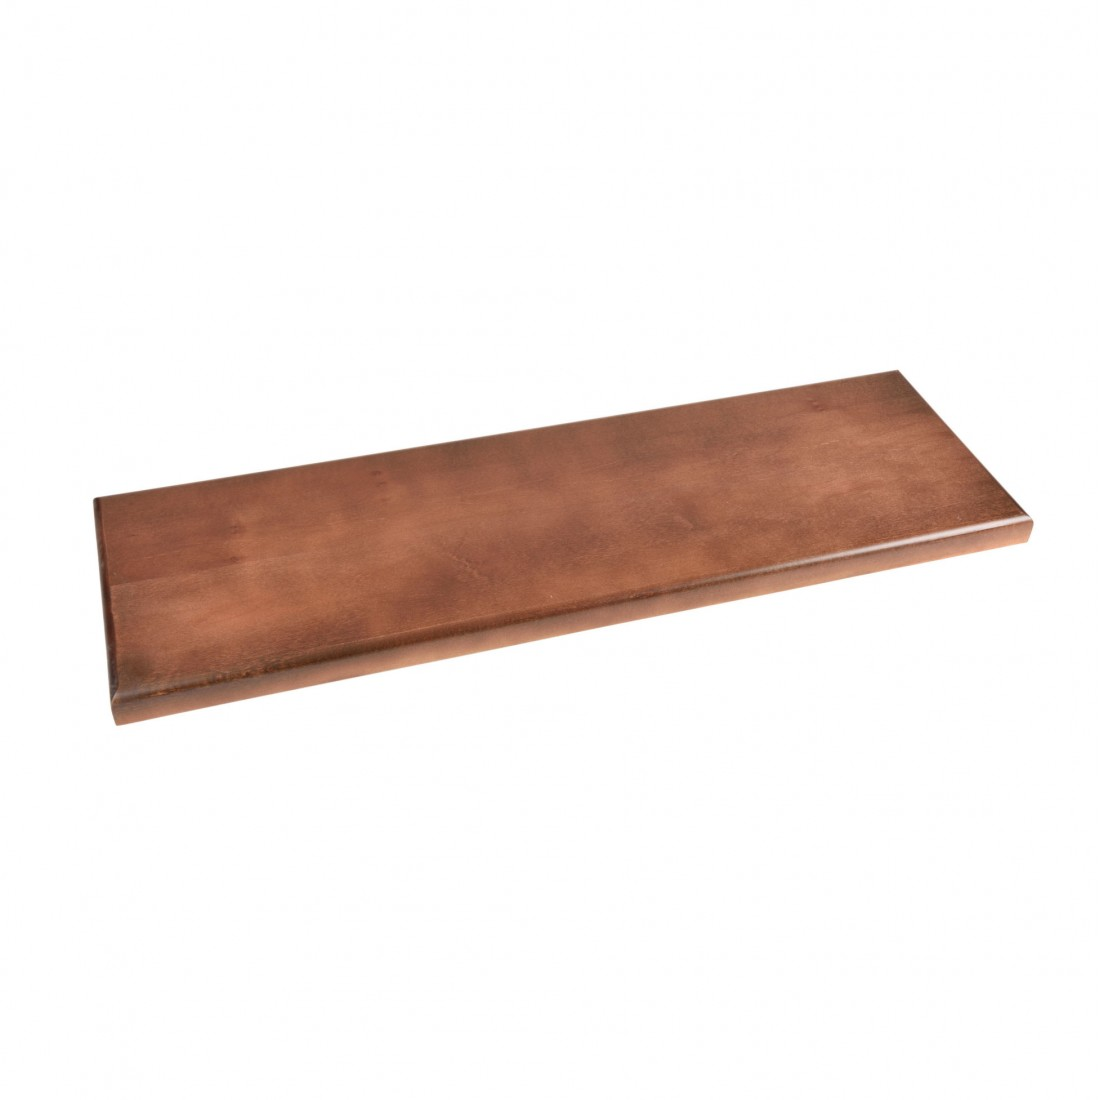 Wooden varnished baseboards cm.80x25x3